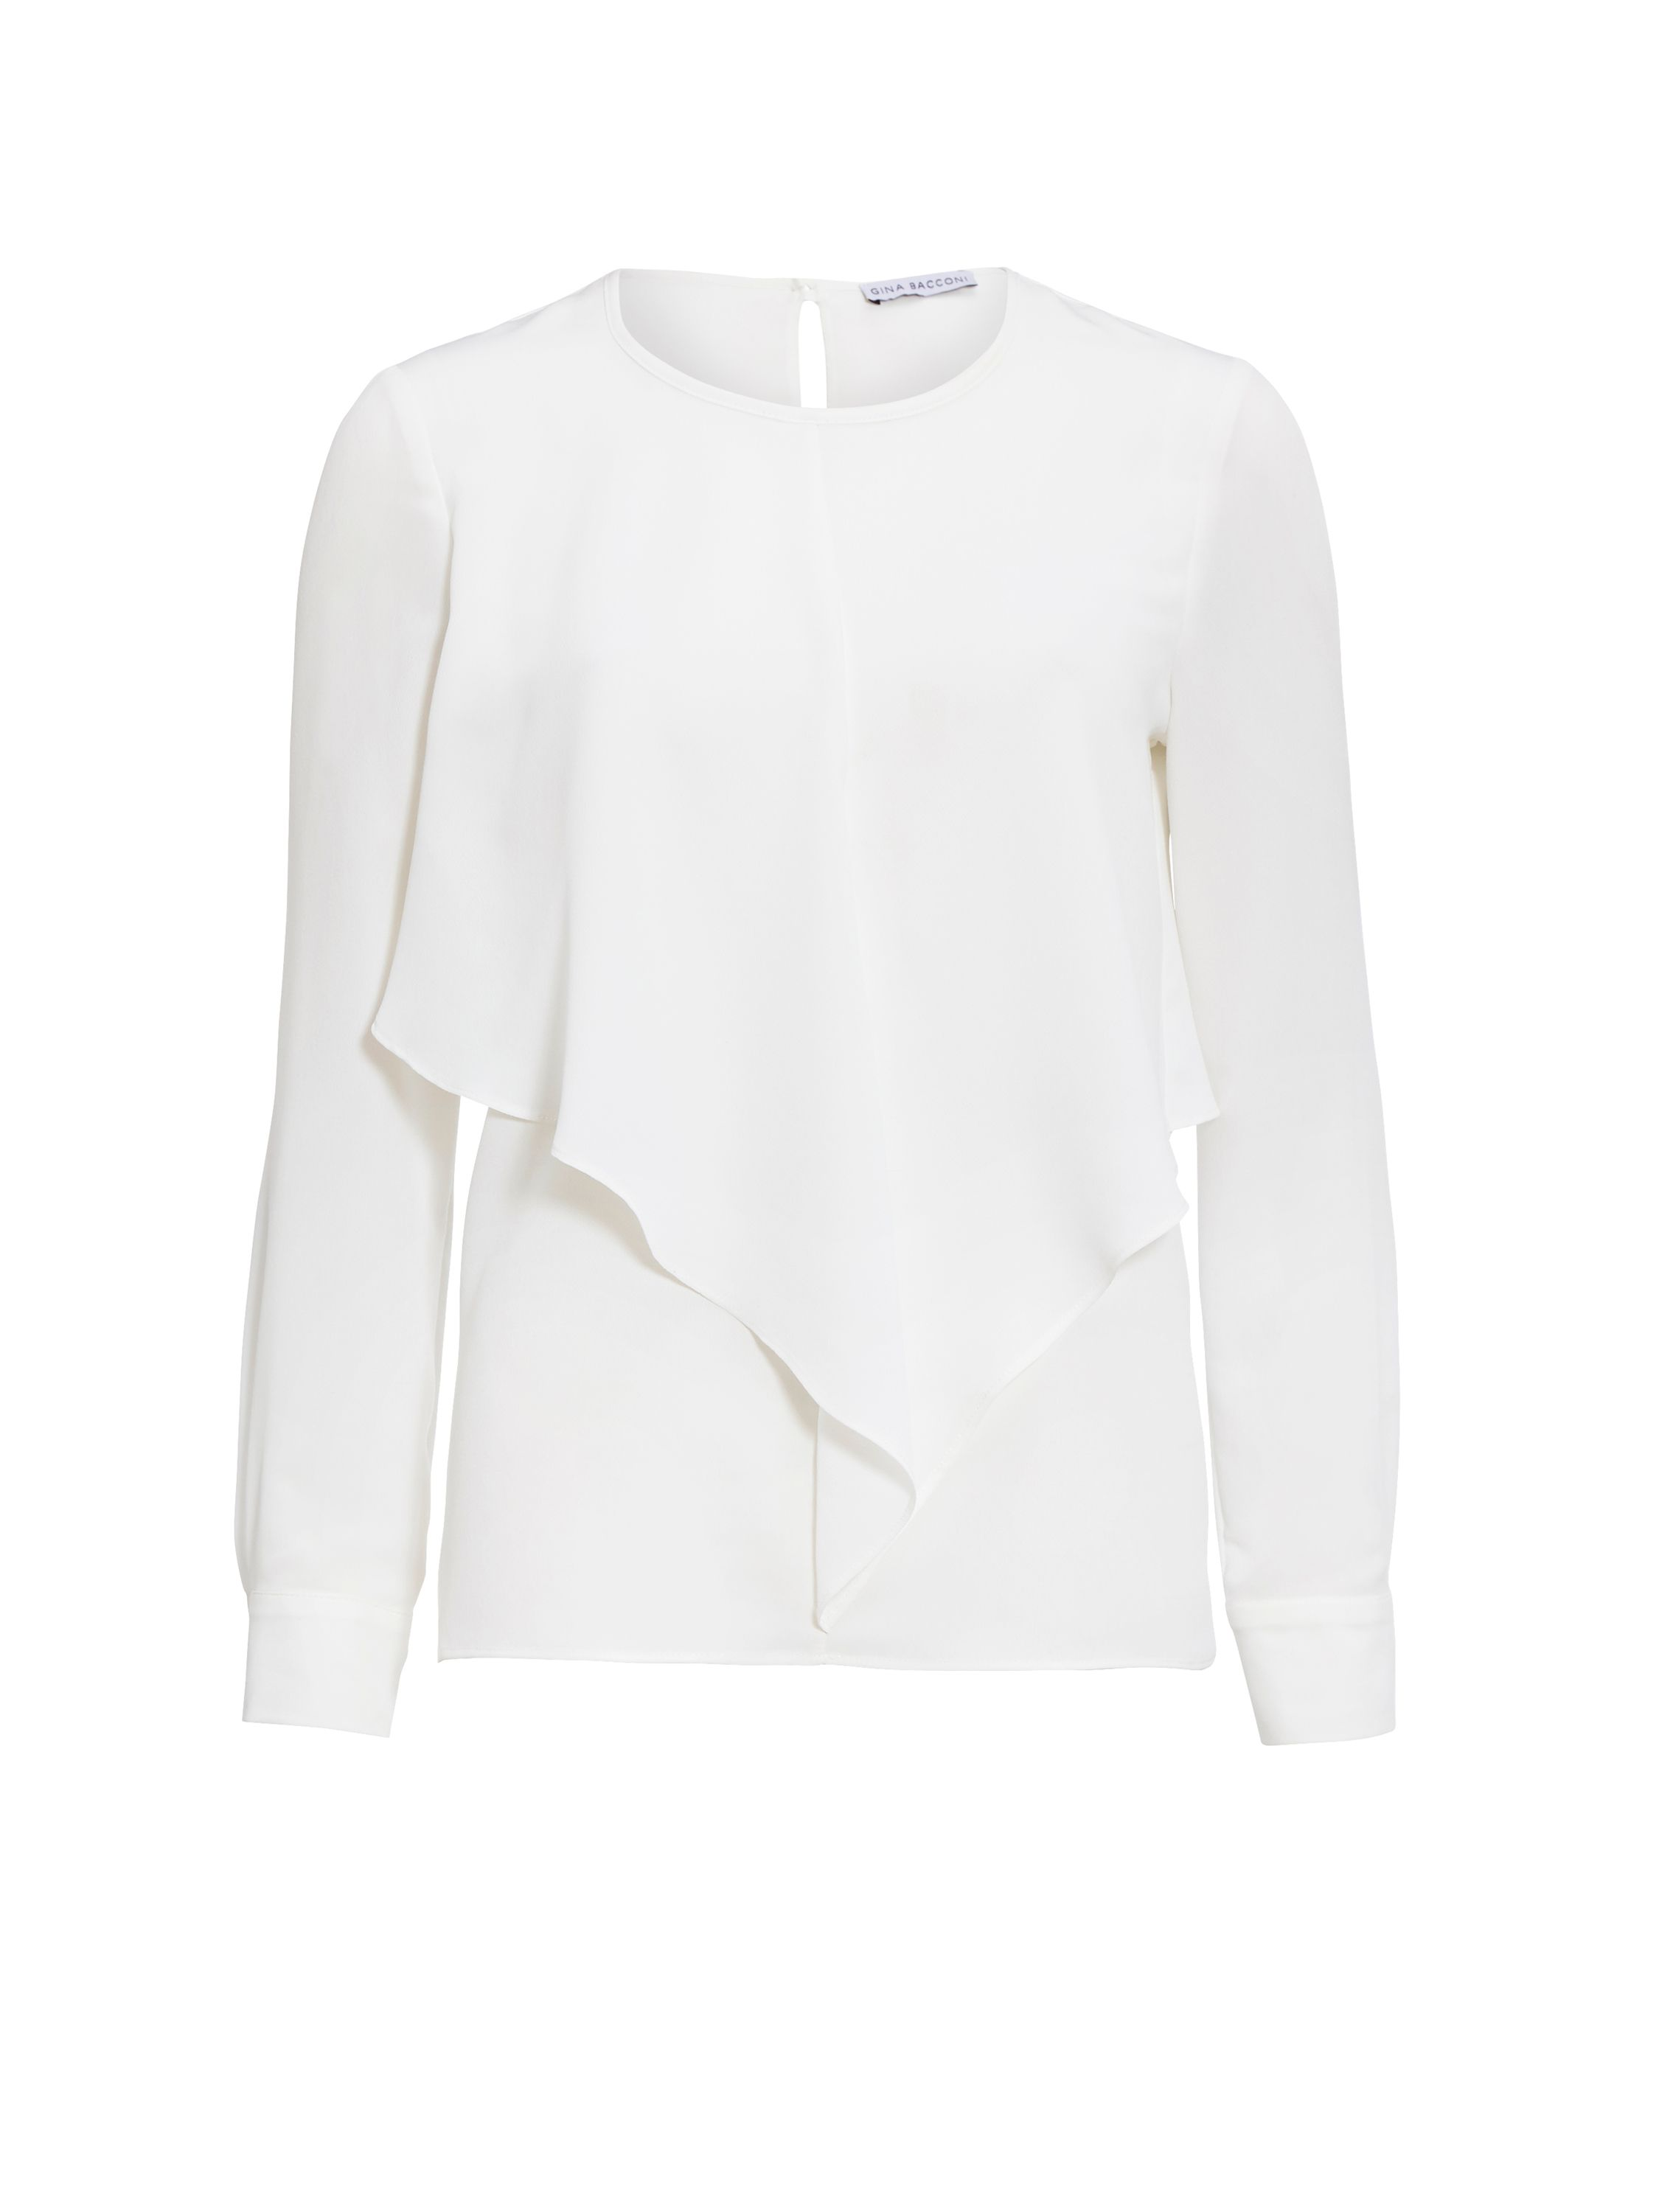 Gina Bacconi Crocodile textured lightweight blouse, Cream